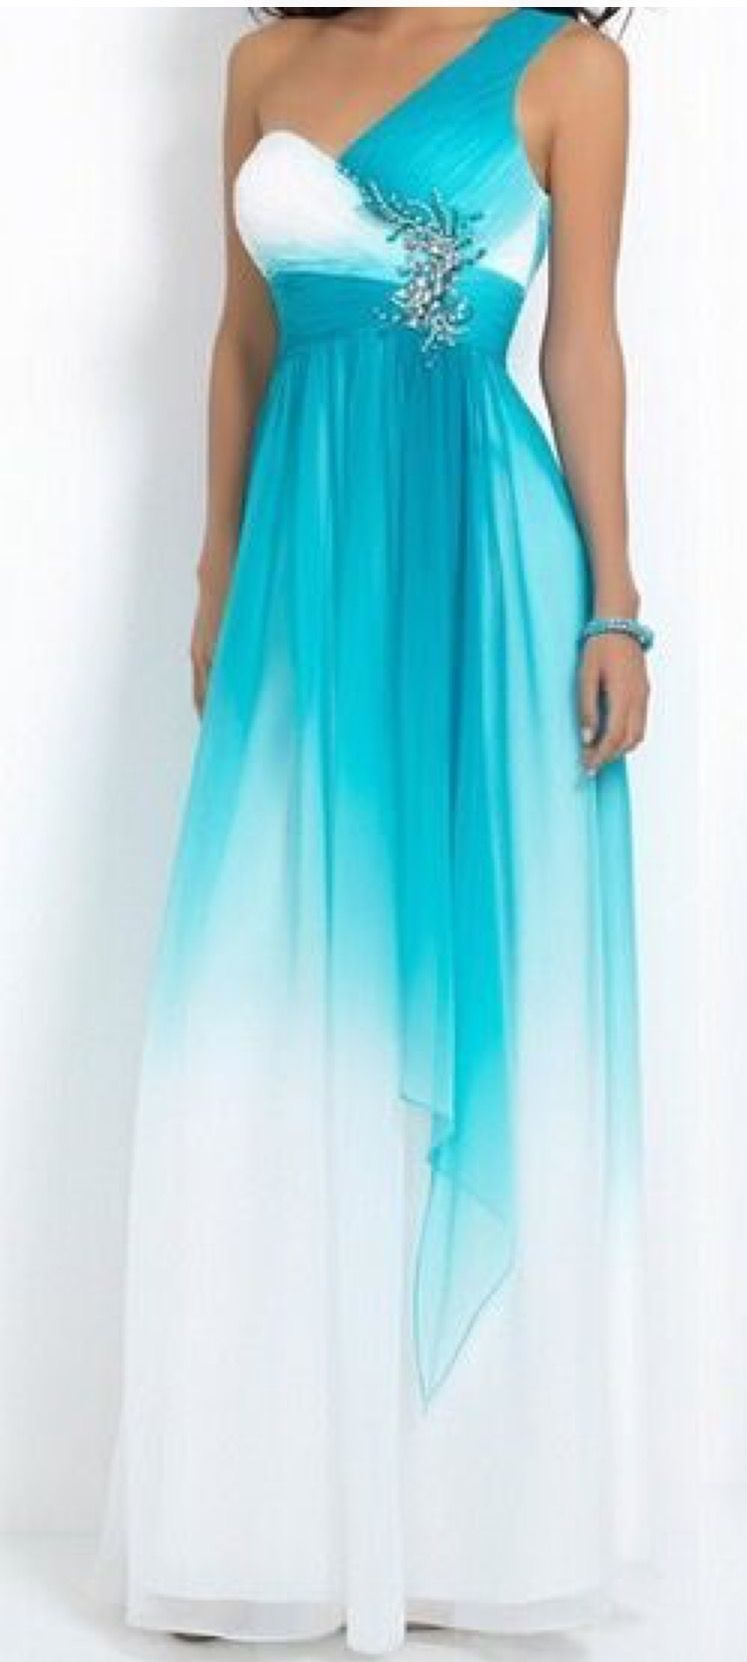 Bridesmaid gown wedding dresses pinterest gowns google and prom